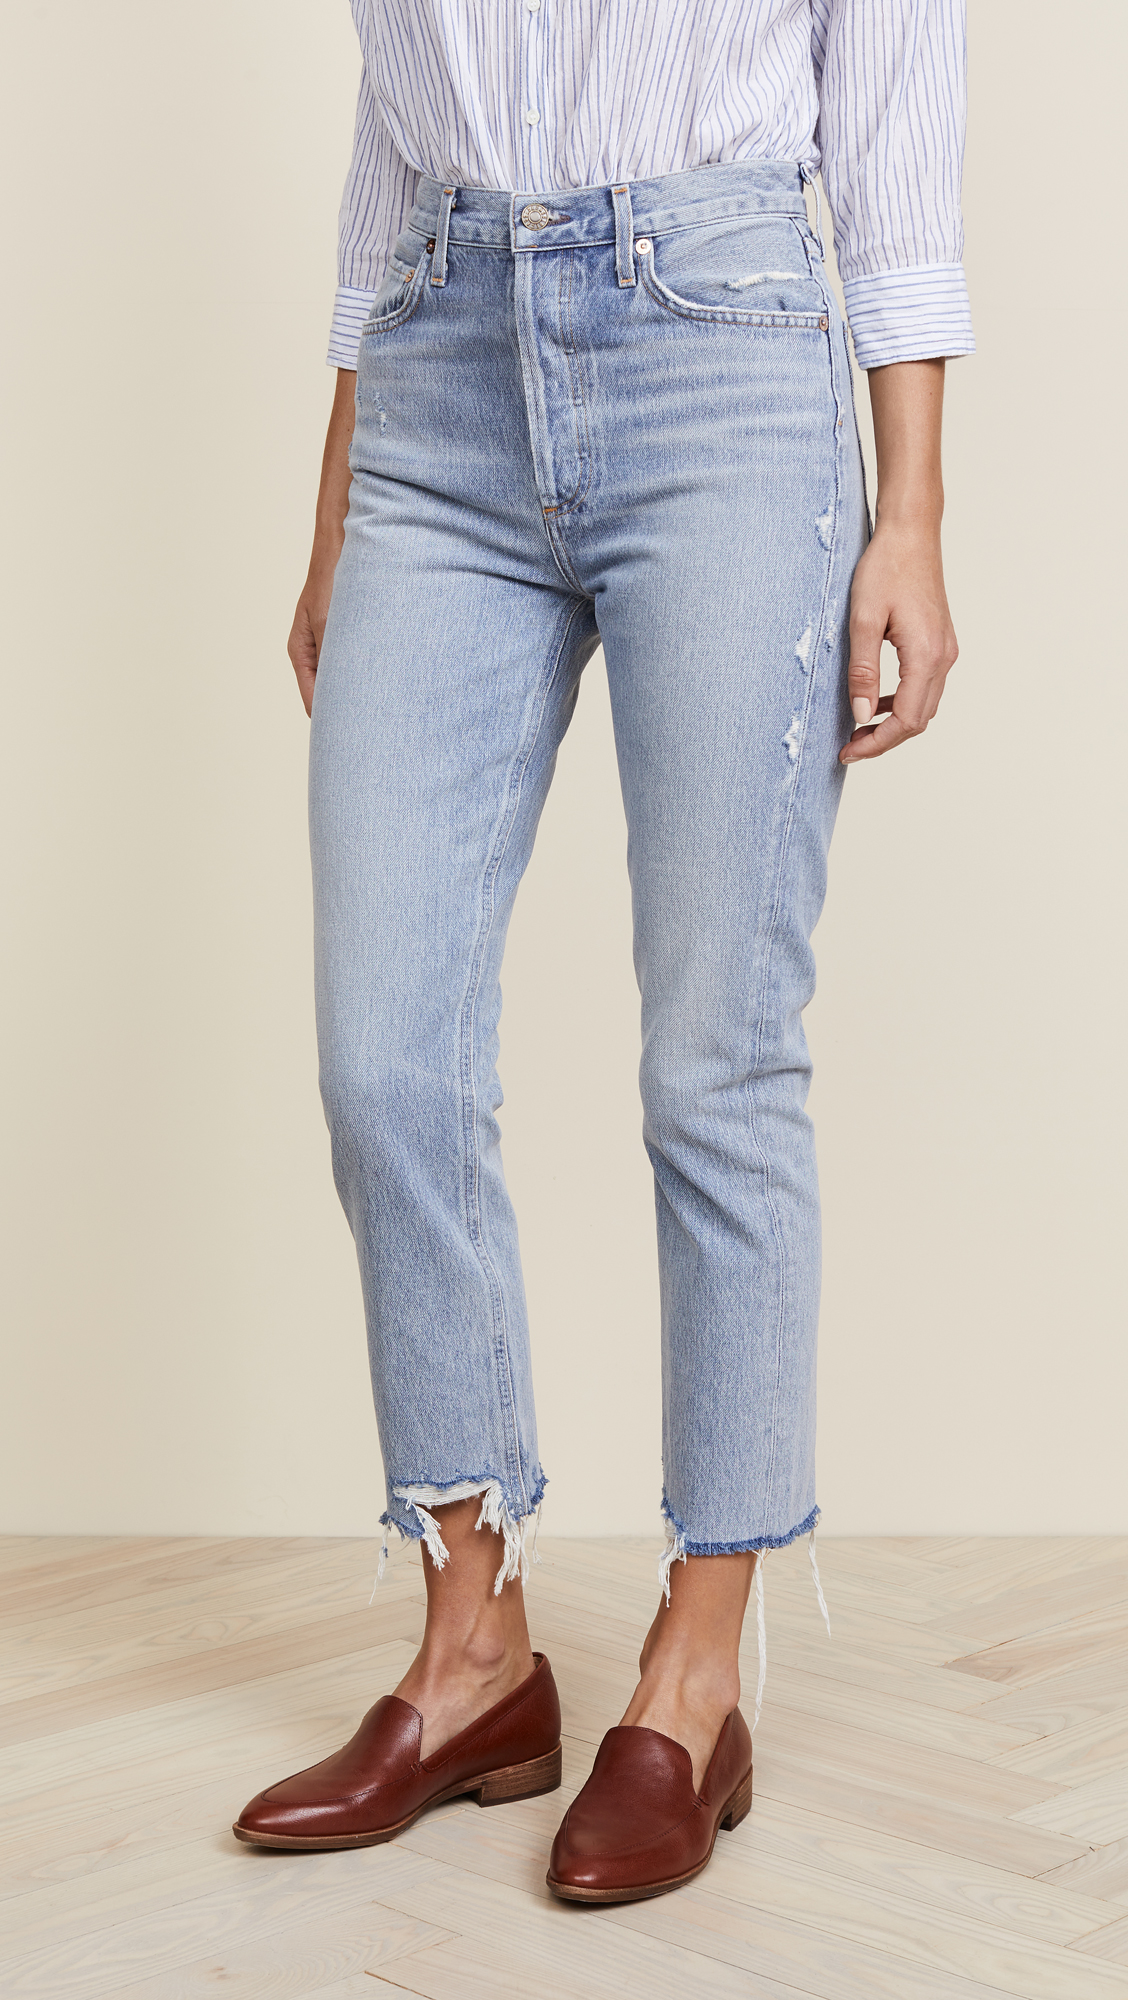 distressed straight-leg jeans - Blue A Gold E 9tzB6VrPa